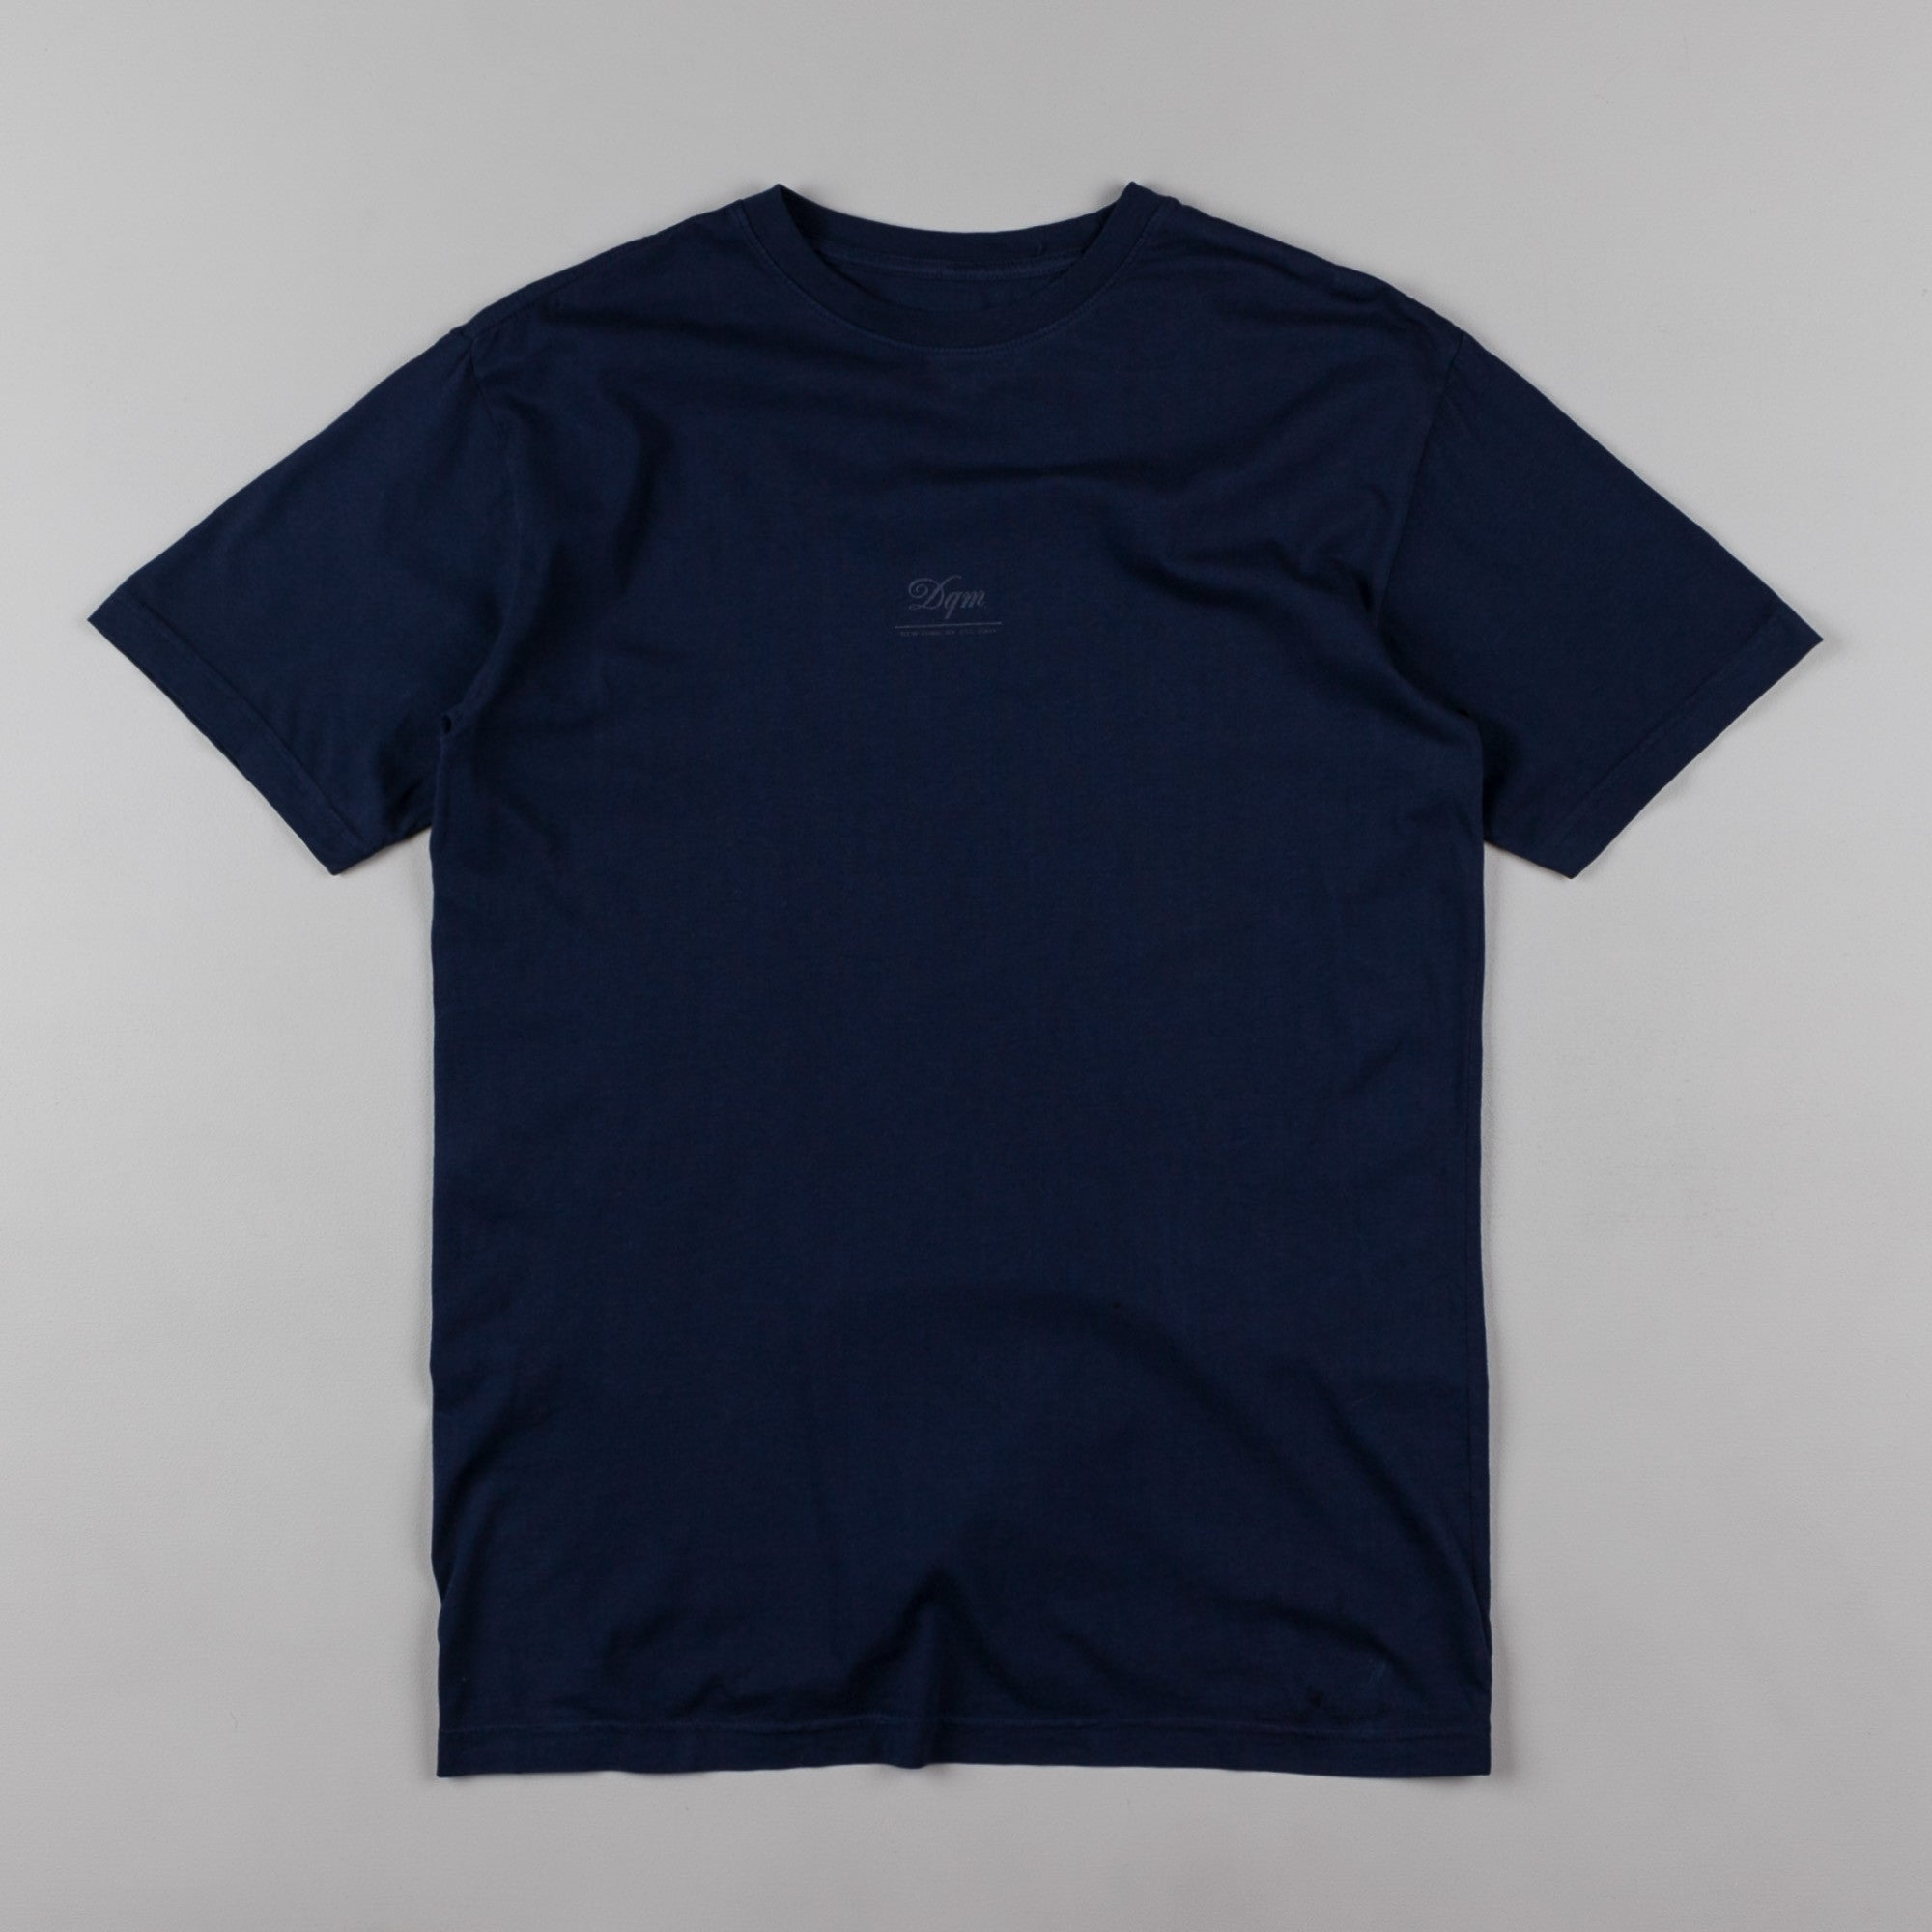 DQM Tiny Logo T-Shirt - Navy